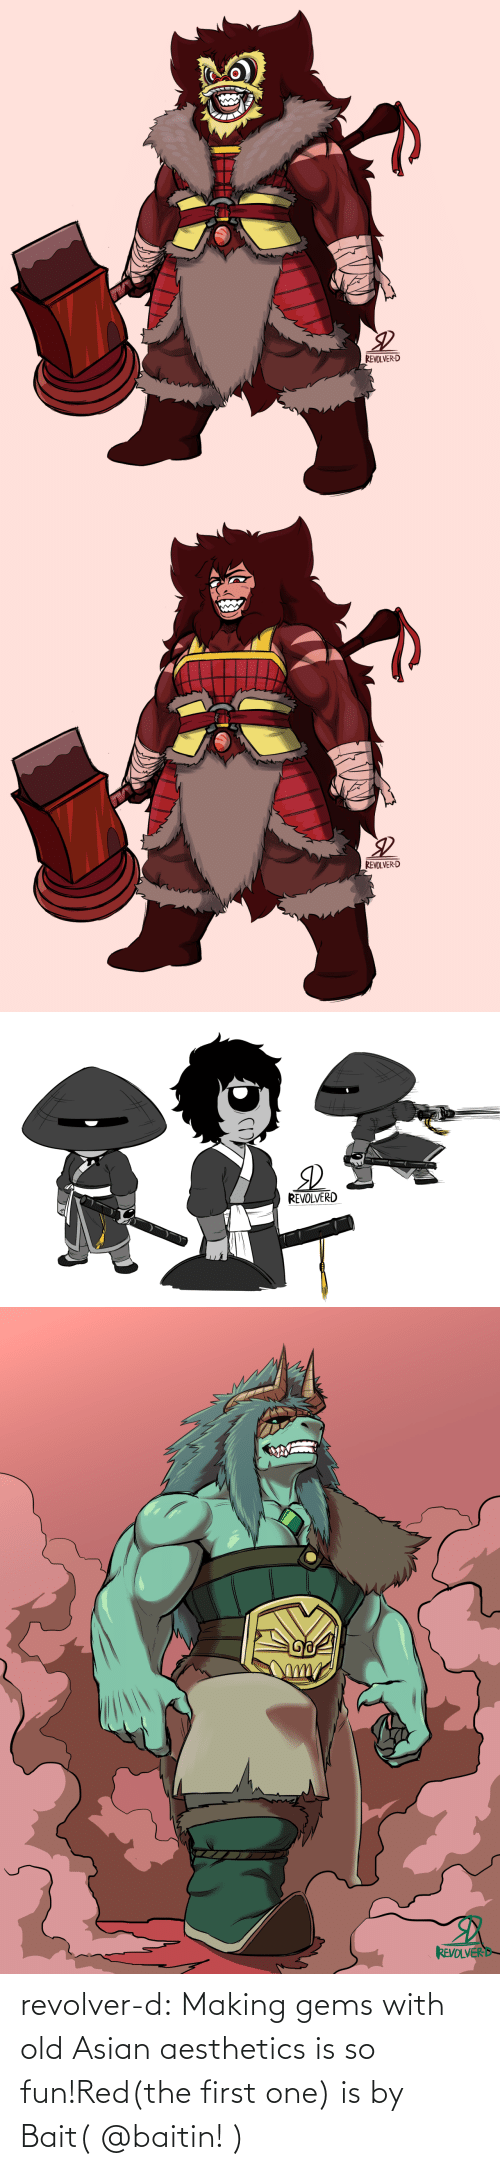 first: revolver-d:  Making gems with old Asian aesthetics is so fun!Red(the first one) is by Bait(@baitin! )